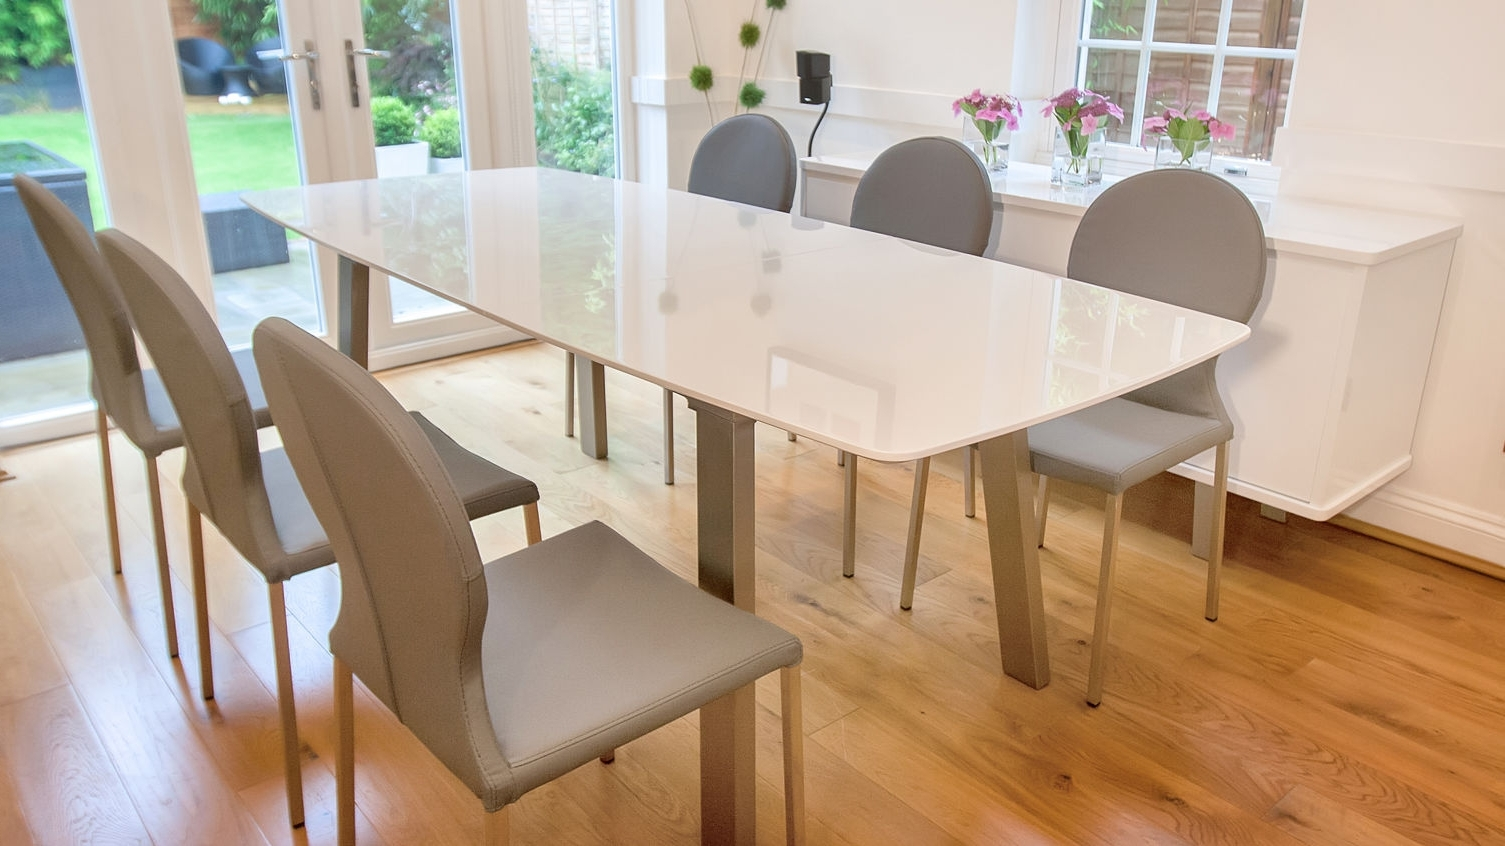 Extendable Dining Tables With 8 Seats intended for Fashionable Extending Dining Room Tables And Chairs Dining Room Chair Slipcovers